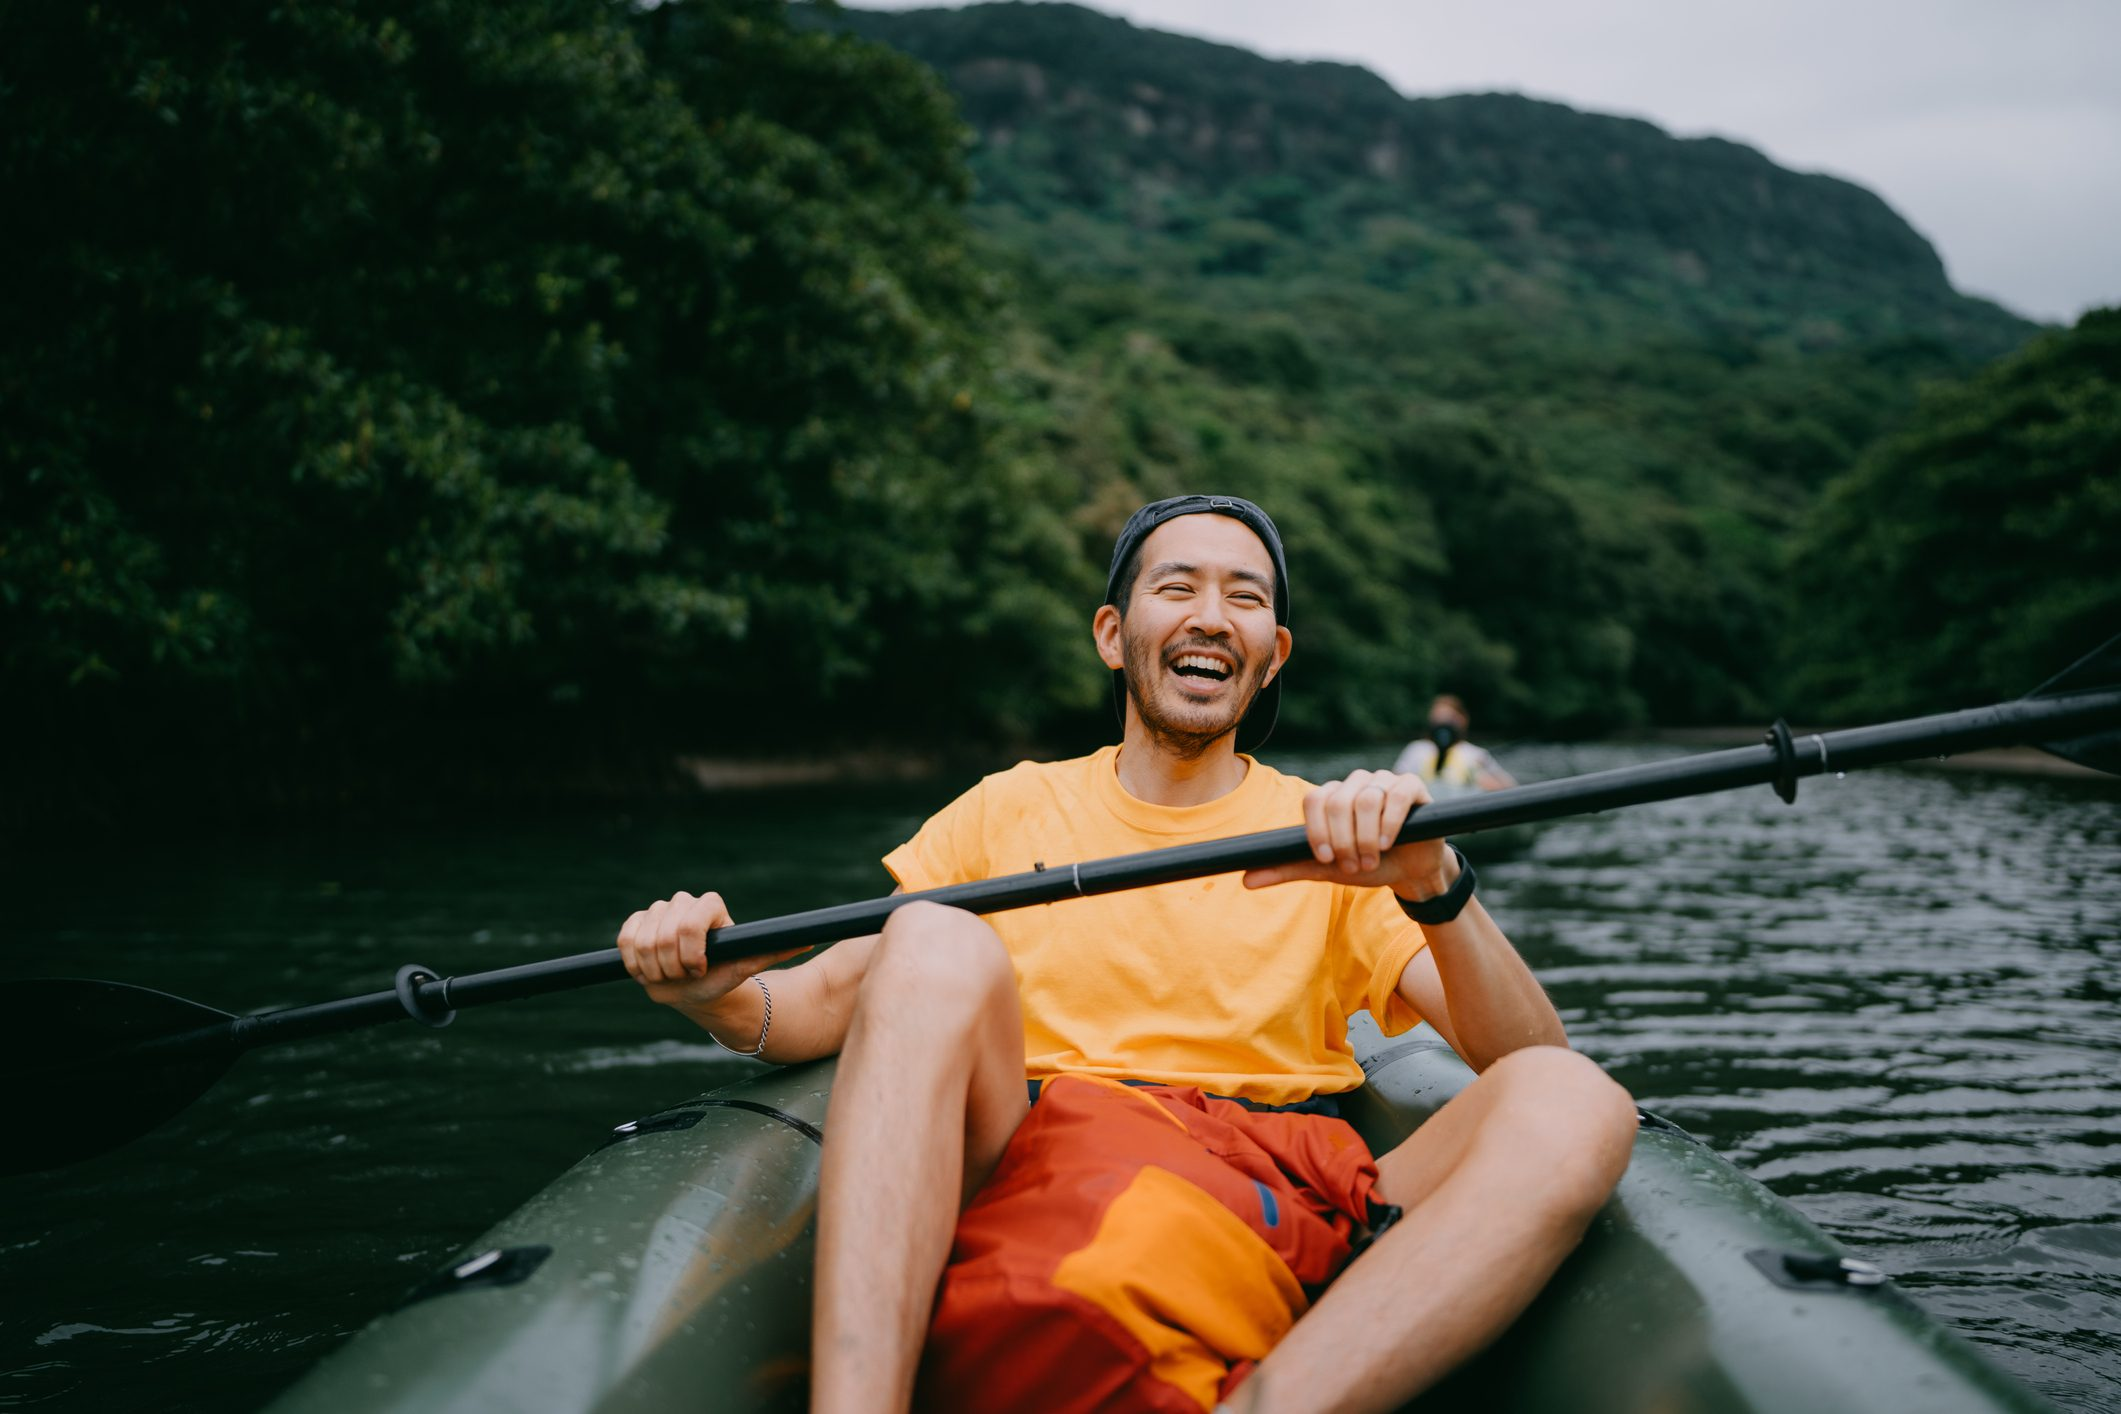 Man paddling kayak in mangrove river and laughing, Iriomote, Japan